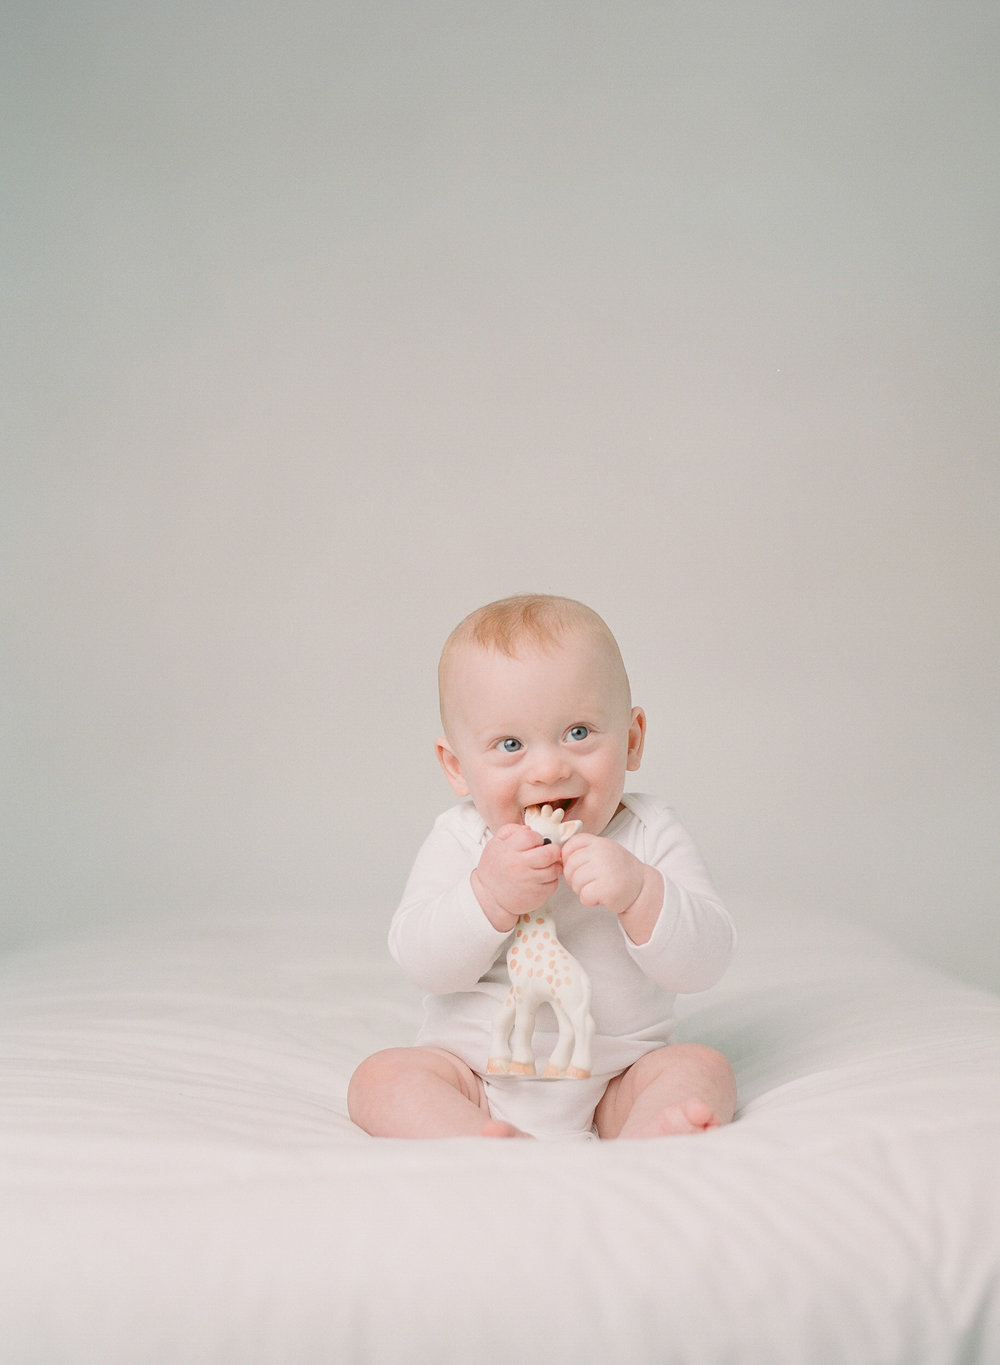 Newborn photographer Seattle | Sandra Coan | baby with giraffe toy photographed on film